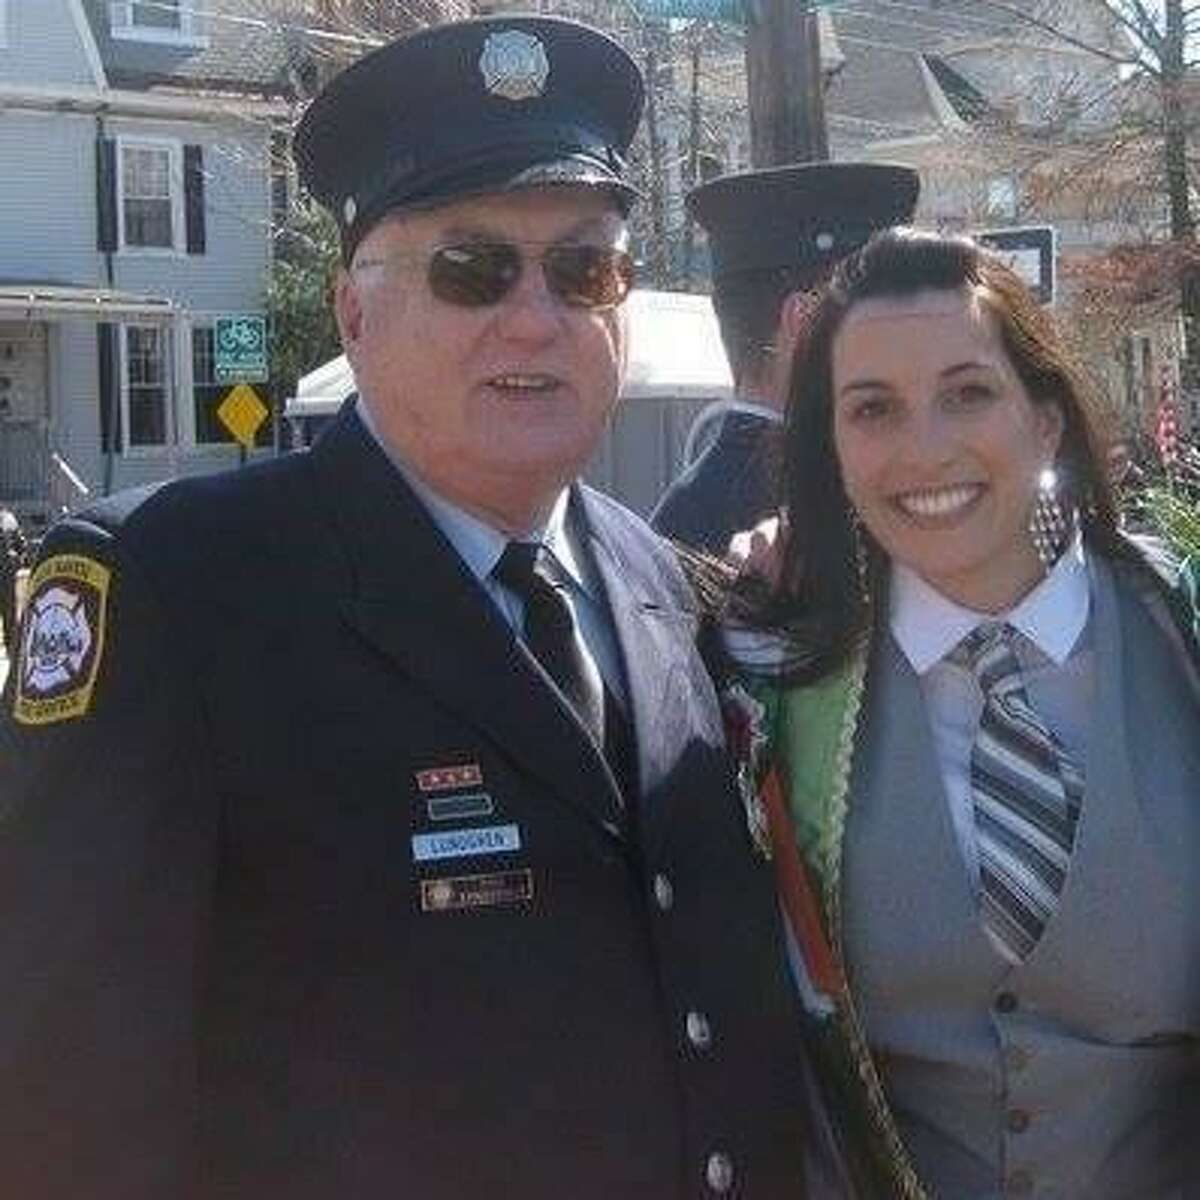 Parade Committee member Courtney Lundgren Connors and her father Martin Lundgren with the New Haven Fire Department marching together in the Greater New Haven St. Patrick's Day Parade.